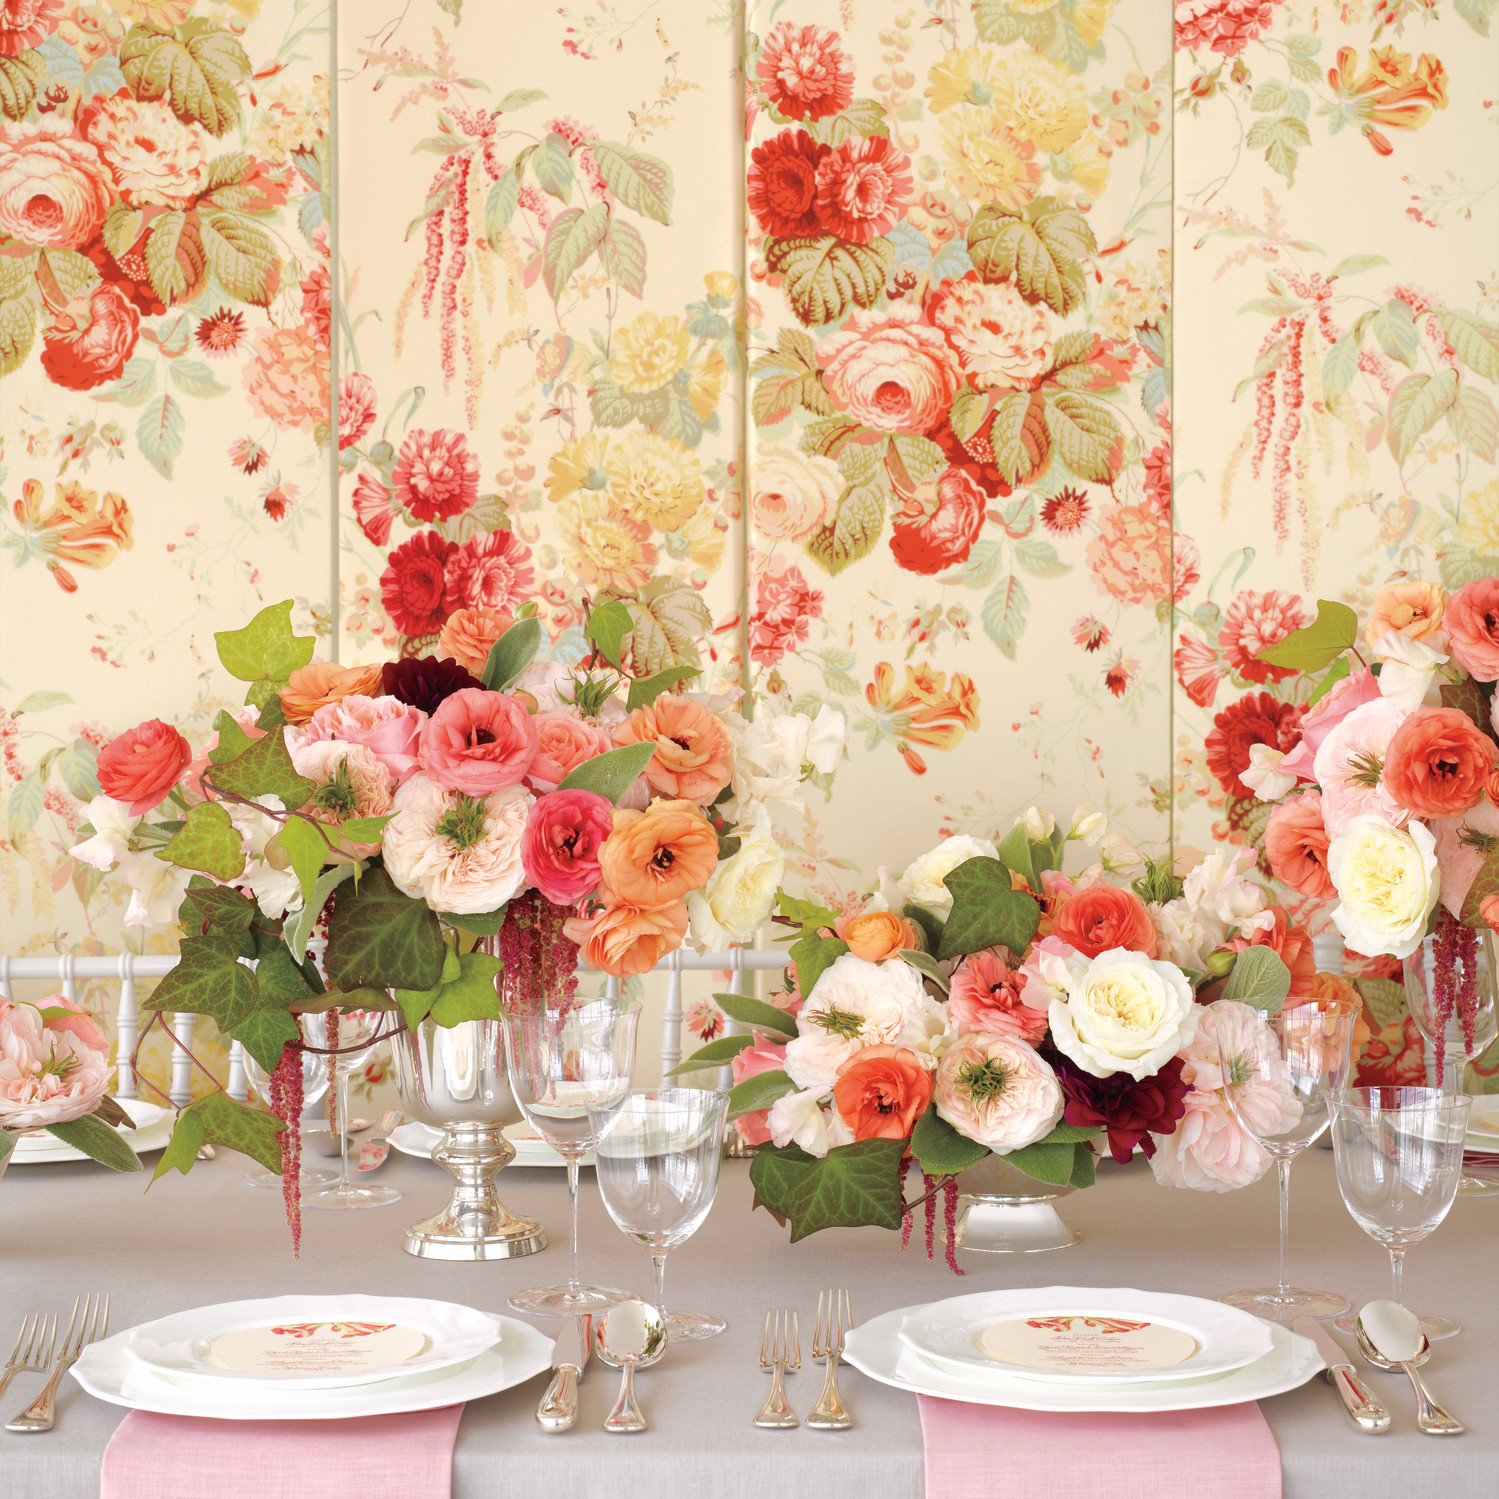 floral decorations for wedding floral fabric inspired wedding ideas martha stewart weddings 4108